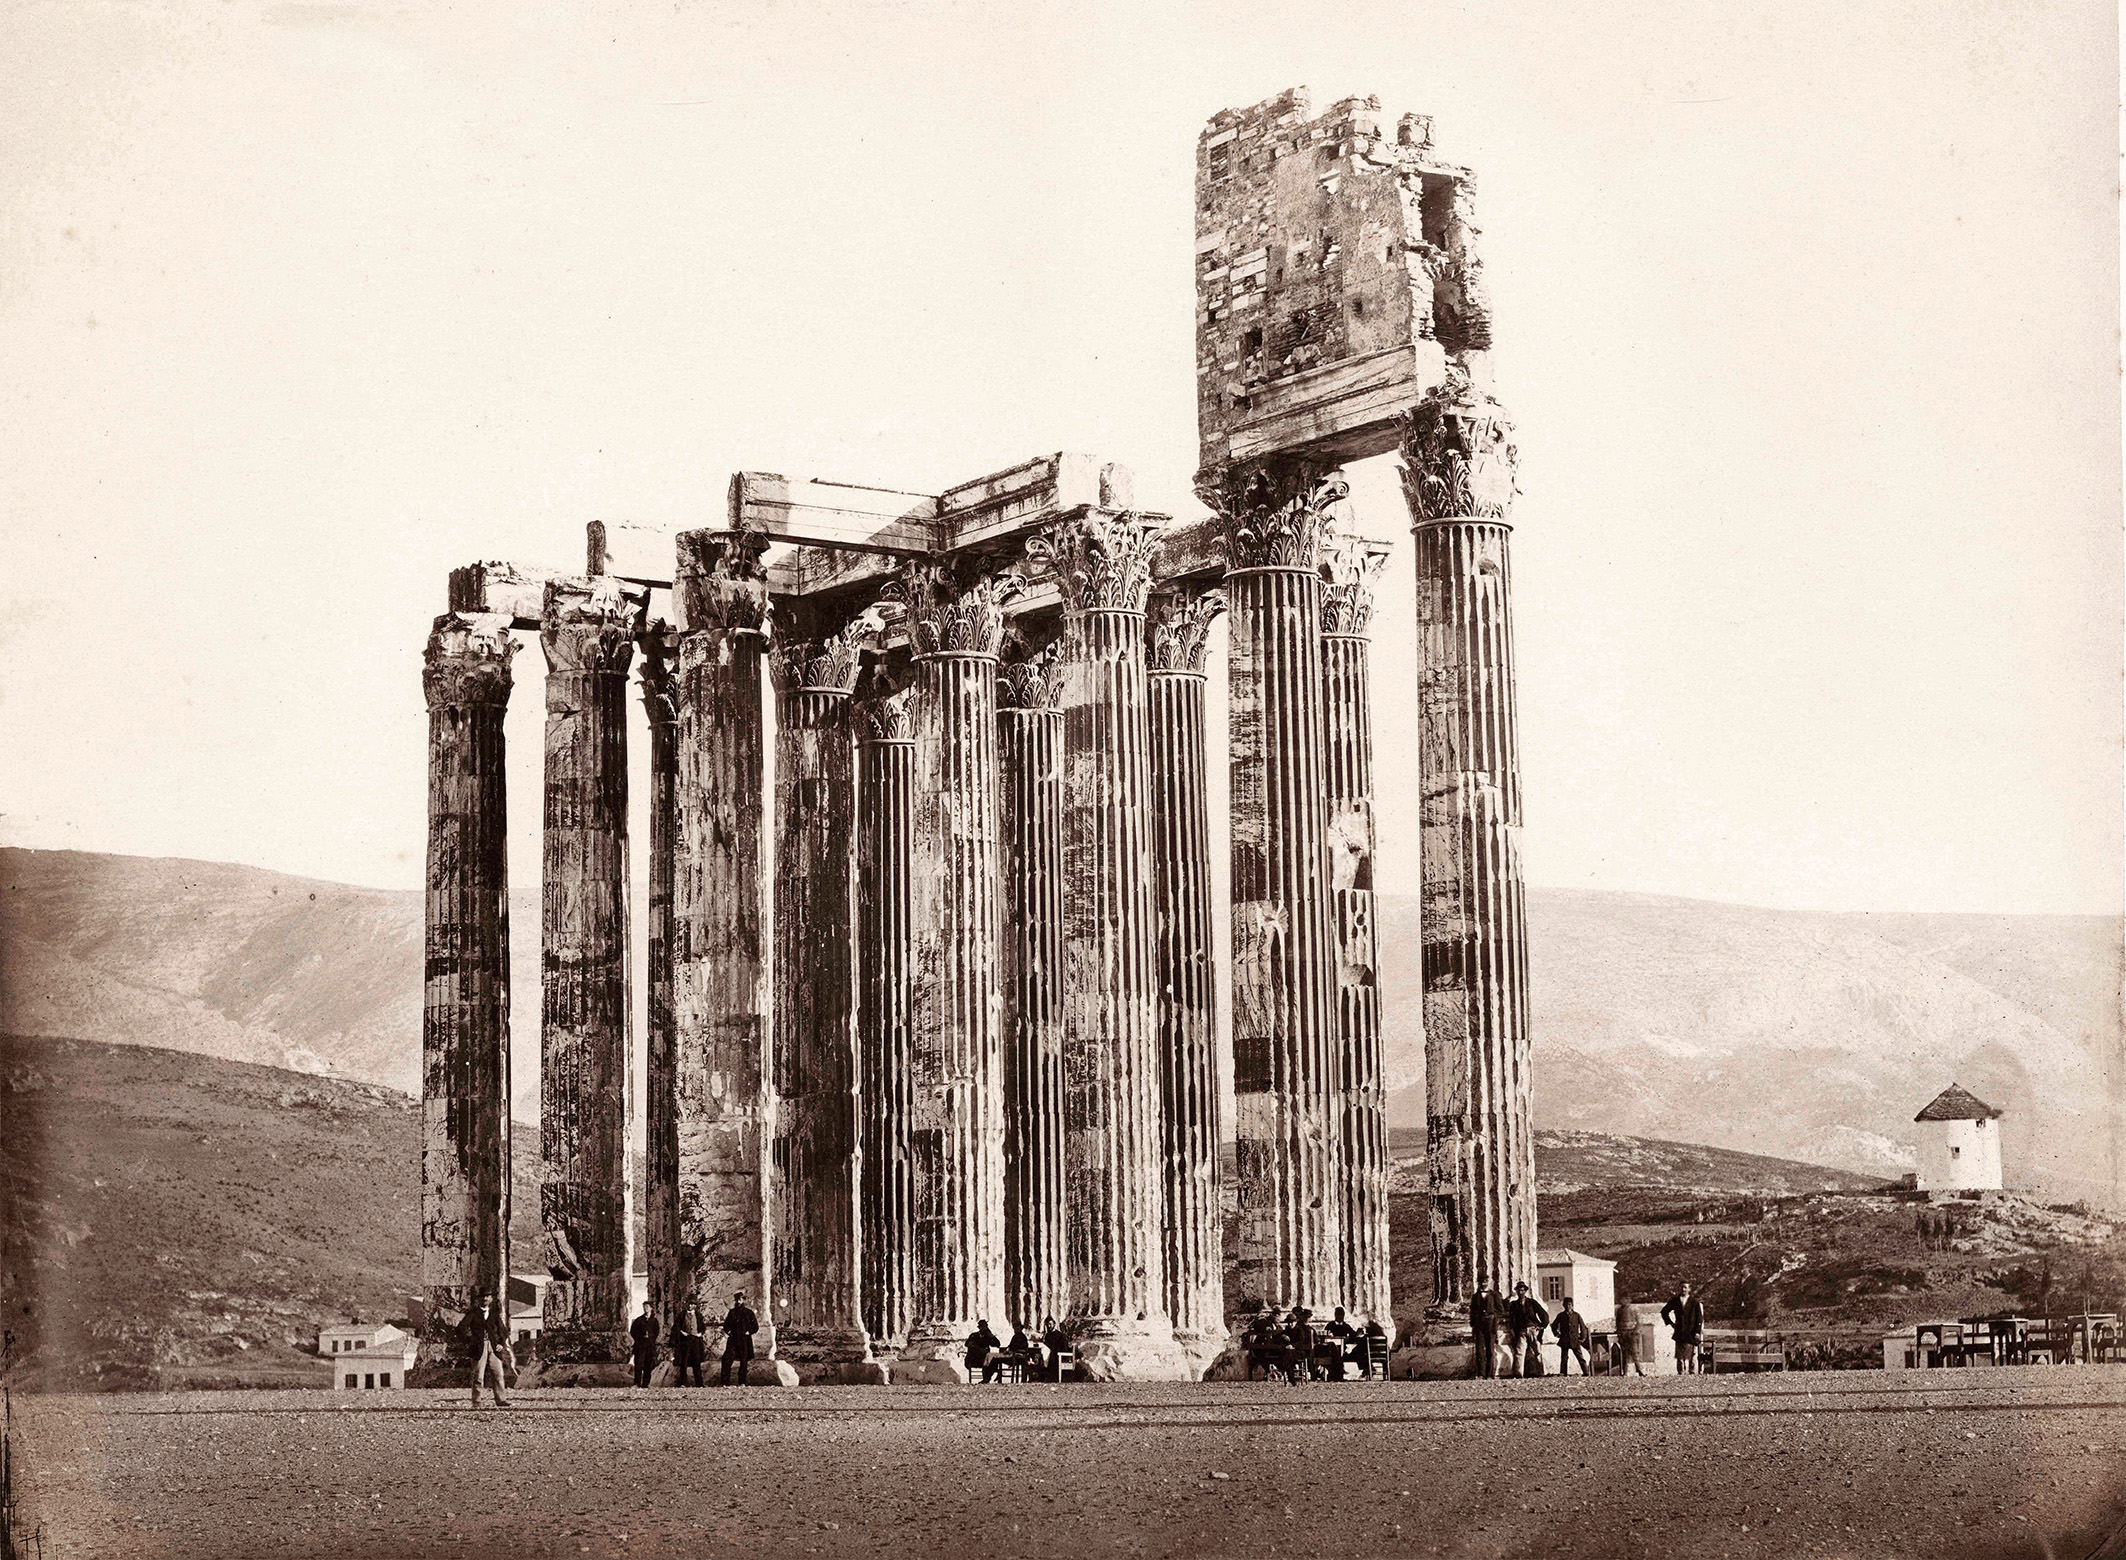 Photo of the Temple of Olympian Zeus, with Christian stylite hut atop the ruins, taken in 1858.